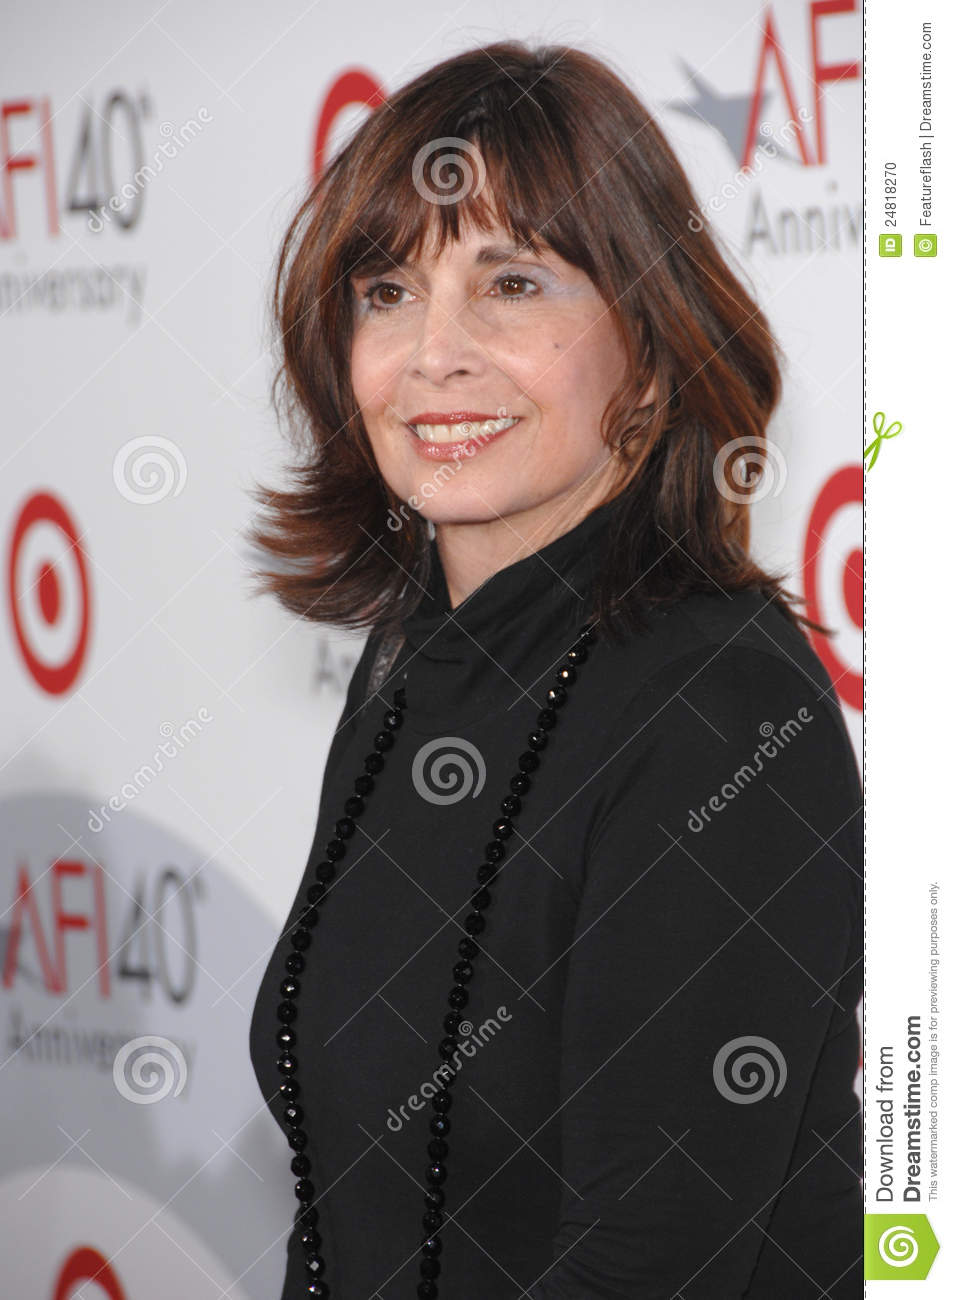 Talia Shire commercial